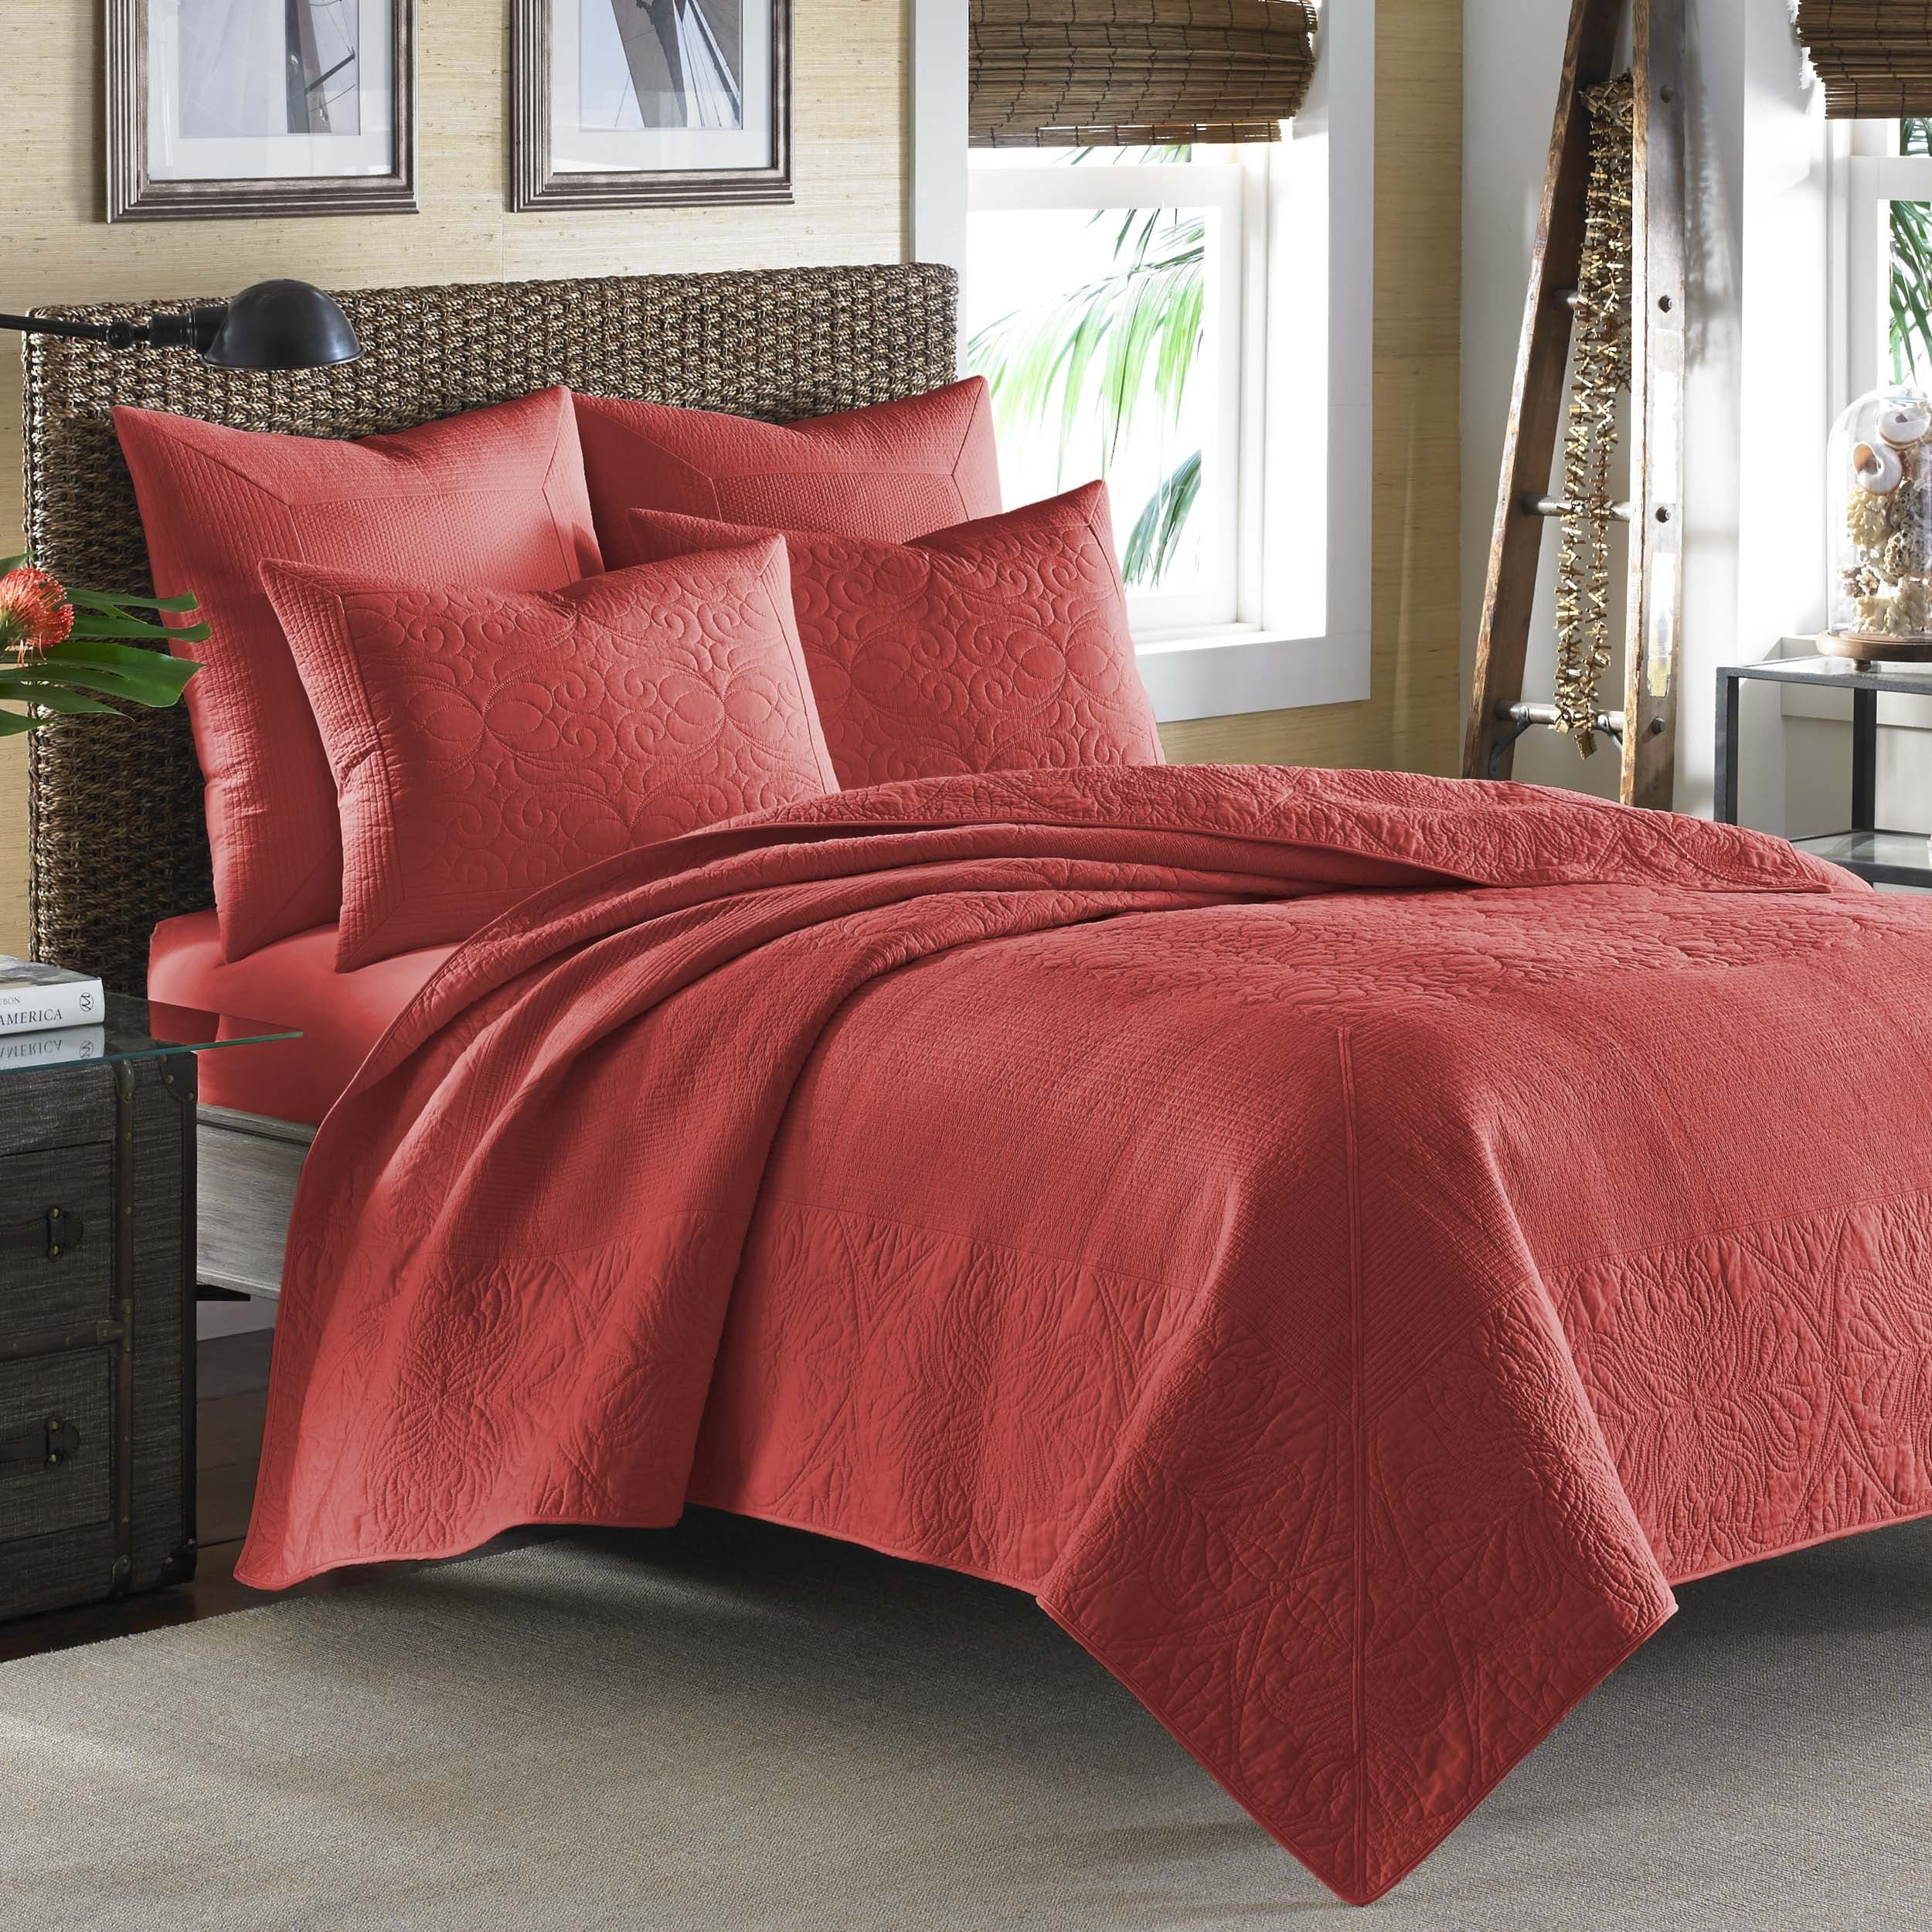 Tommy Bahama Nassau Spice Red Cotton Coverlet (Full/Queen)